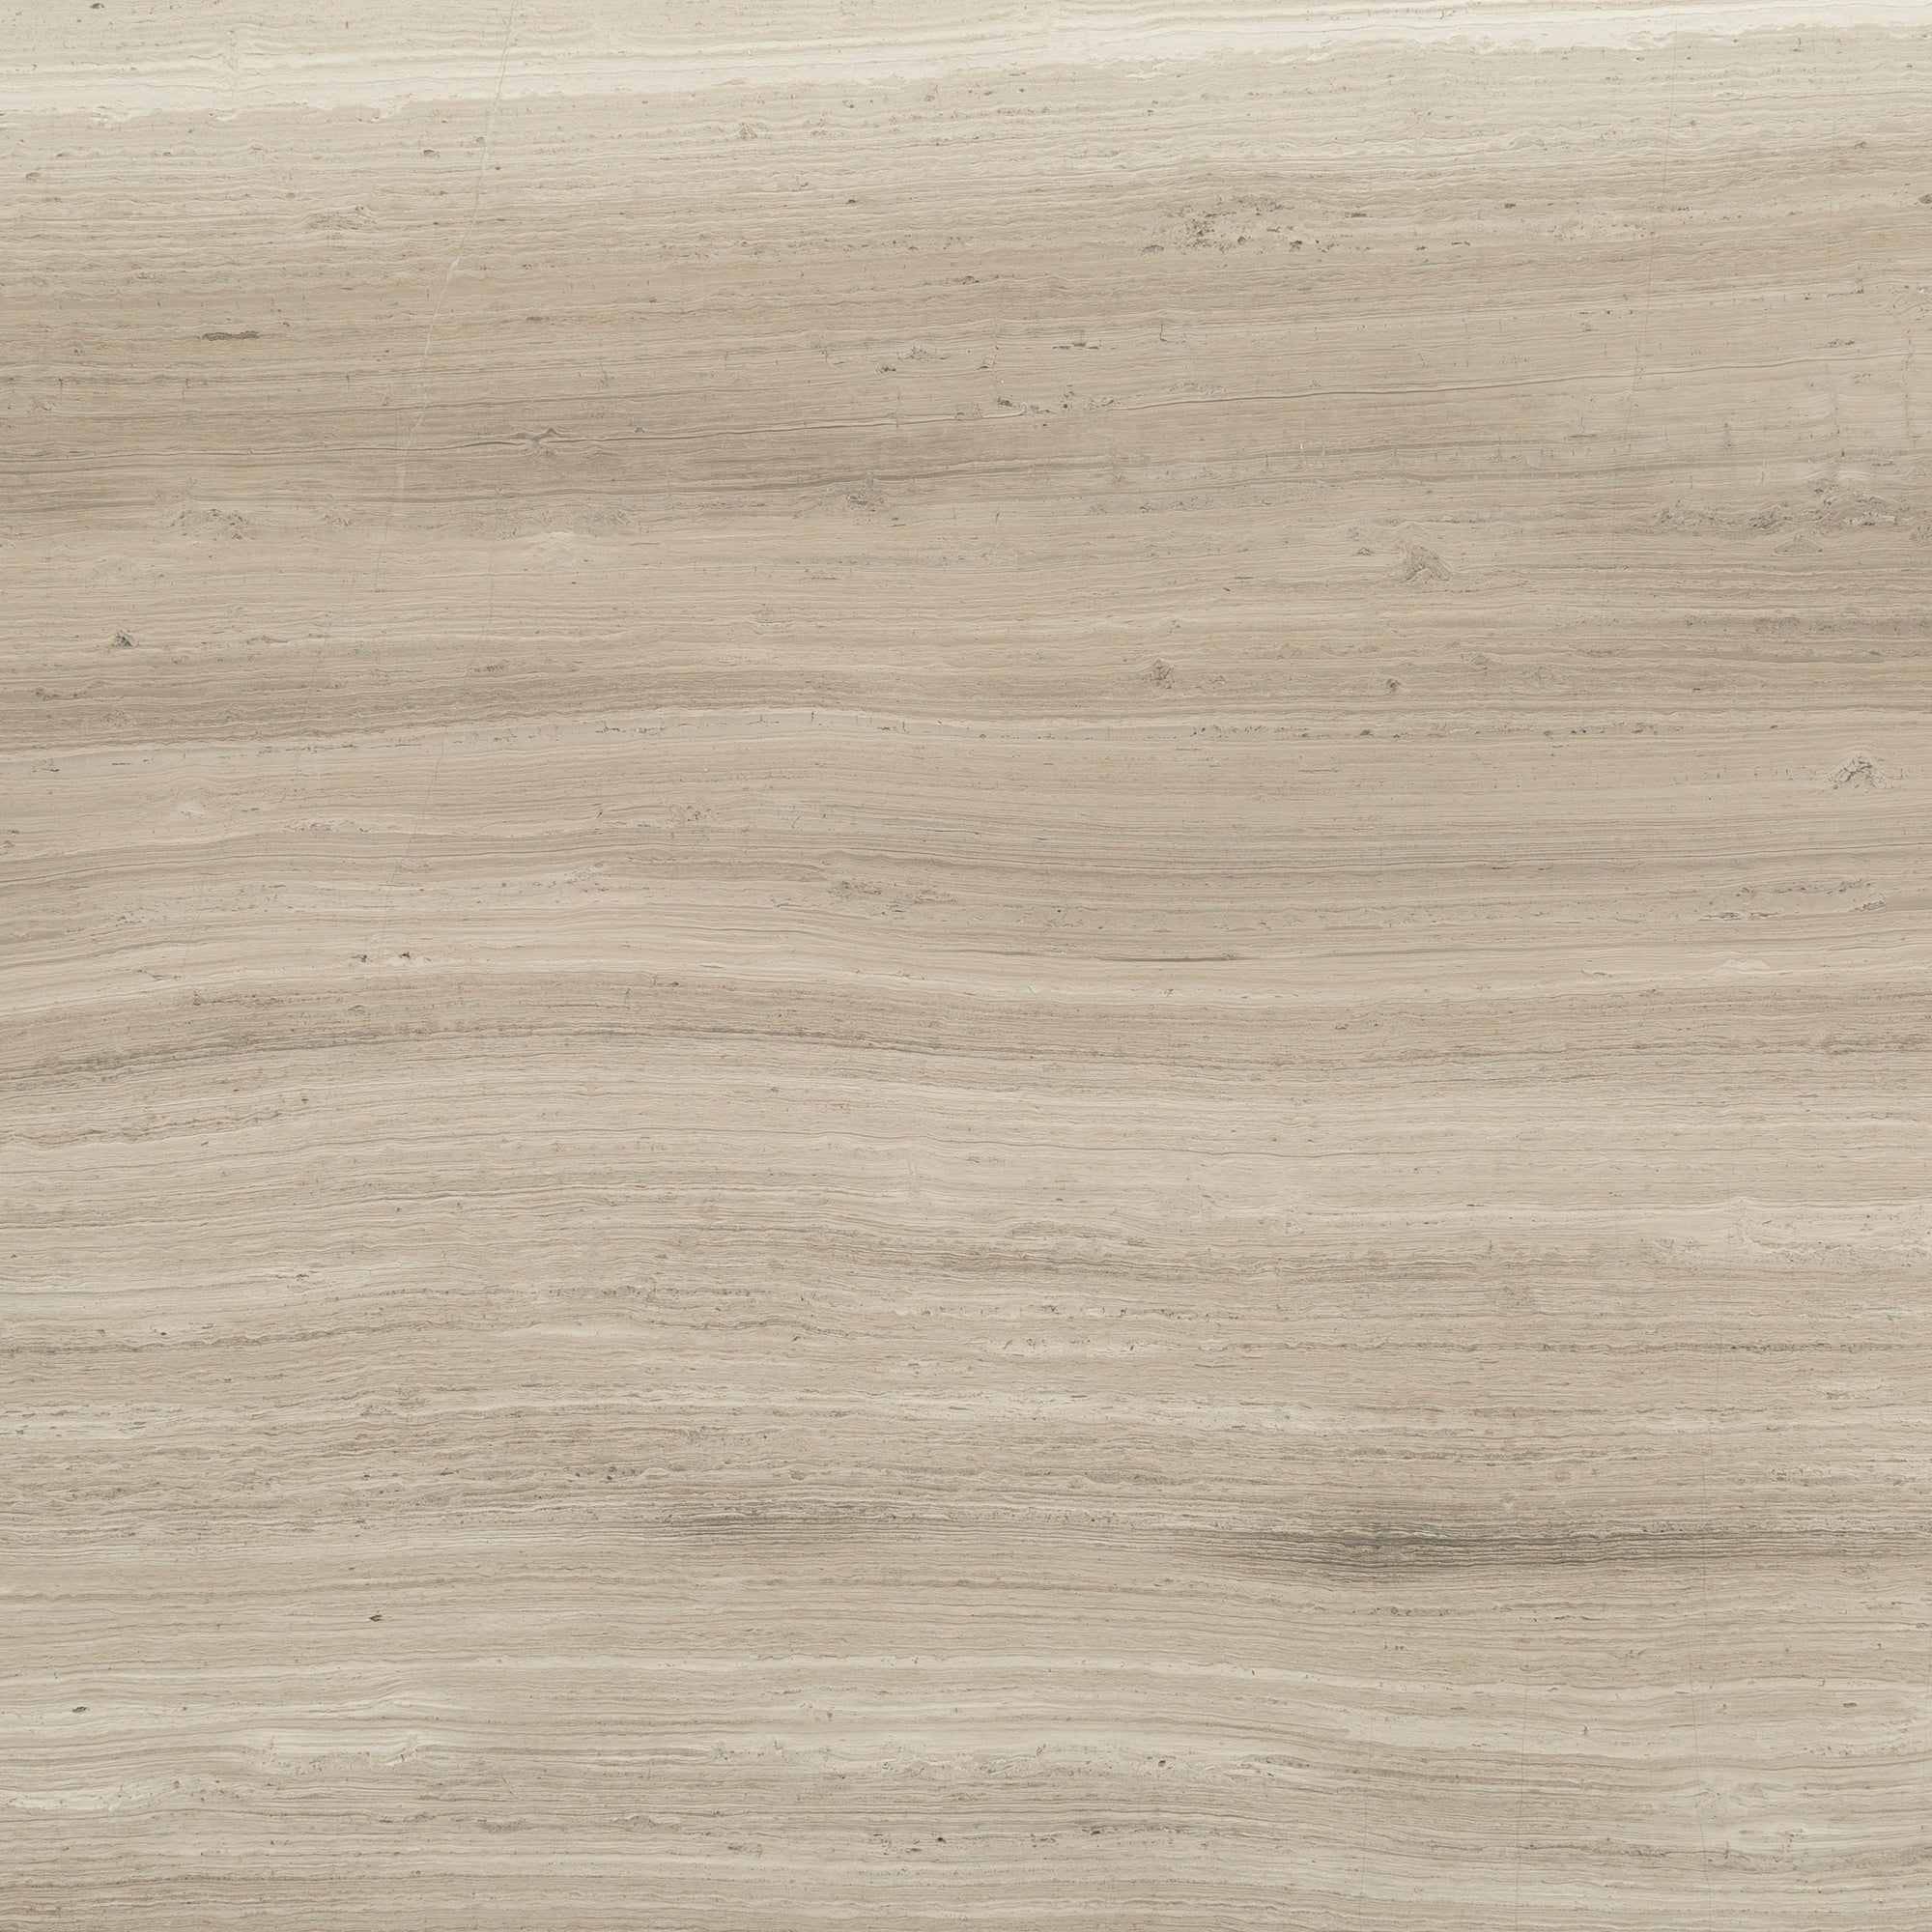 2cm Ash Limestone Swatch Card  Deep Brushed Samples Slab product photo